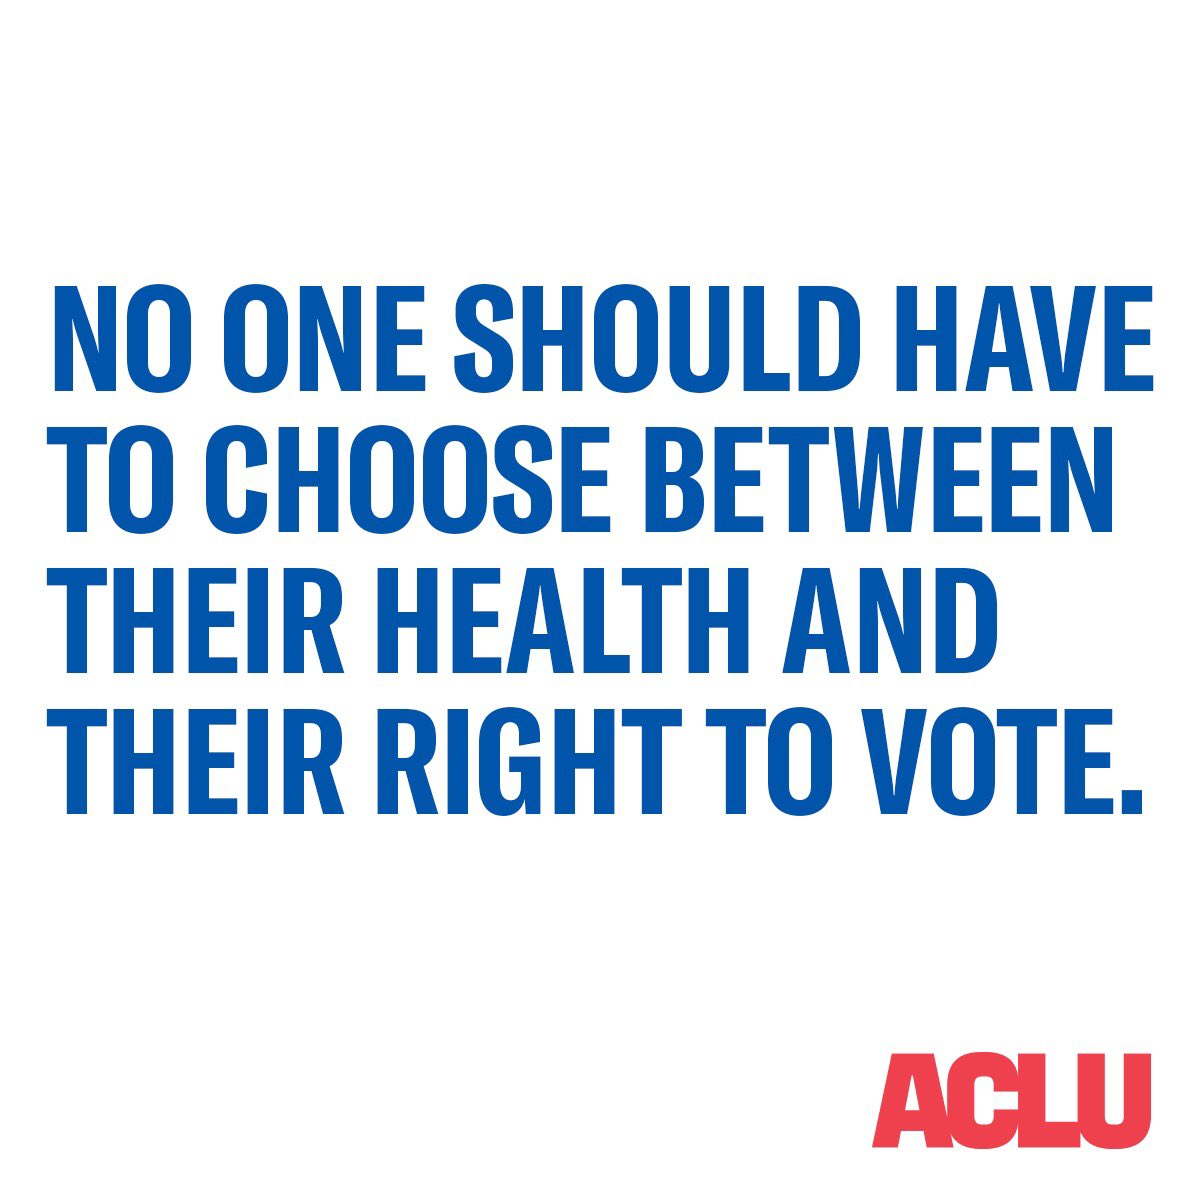 Say it with us: No one should have to choose between their health and their right to vote.